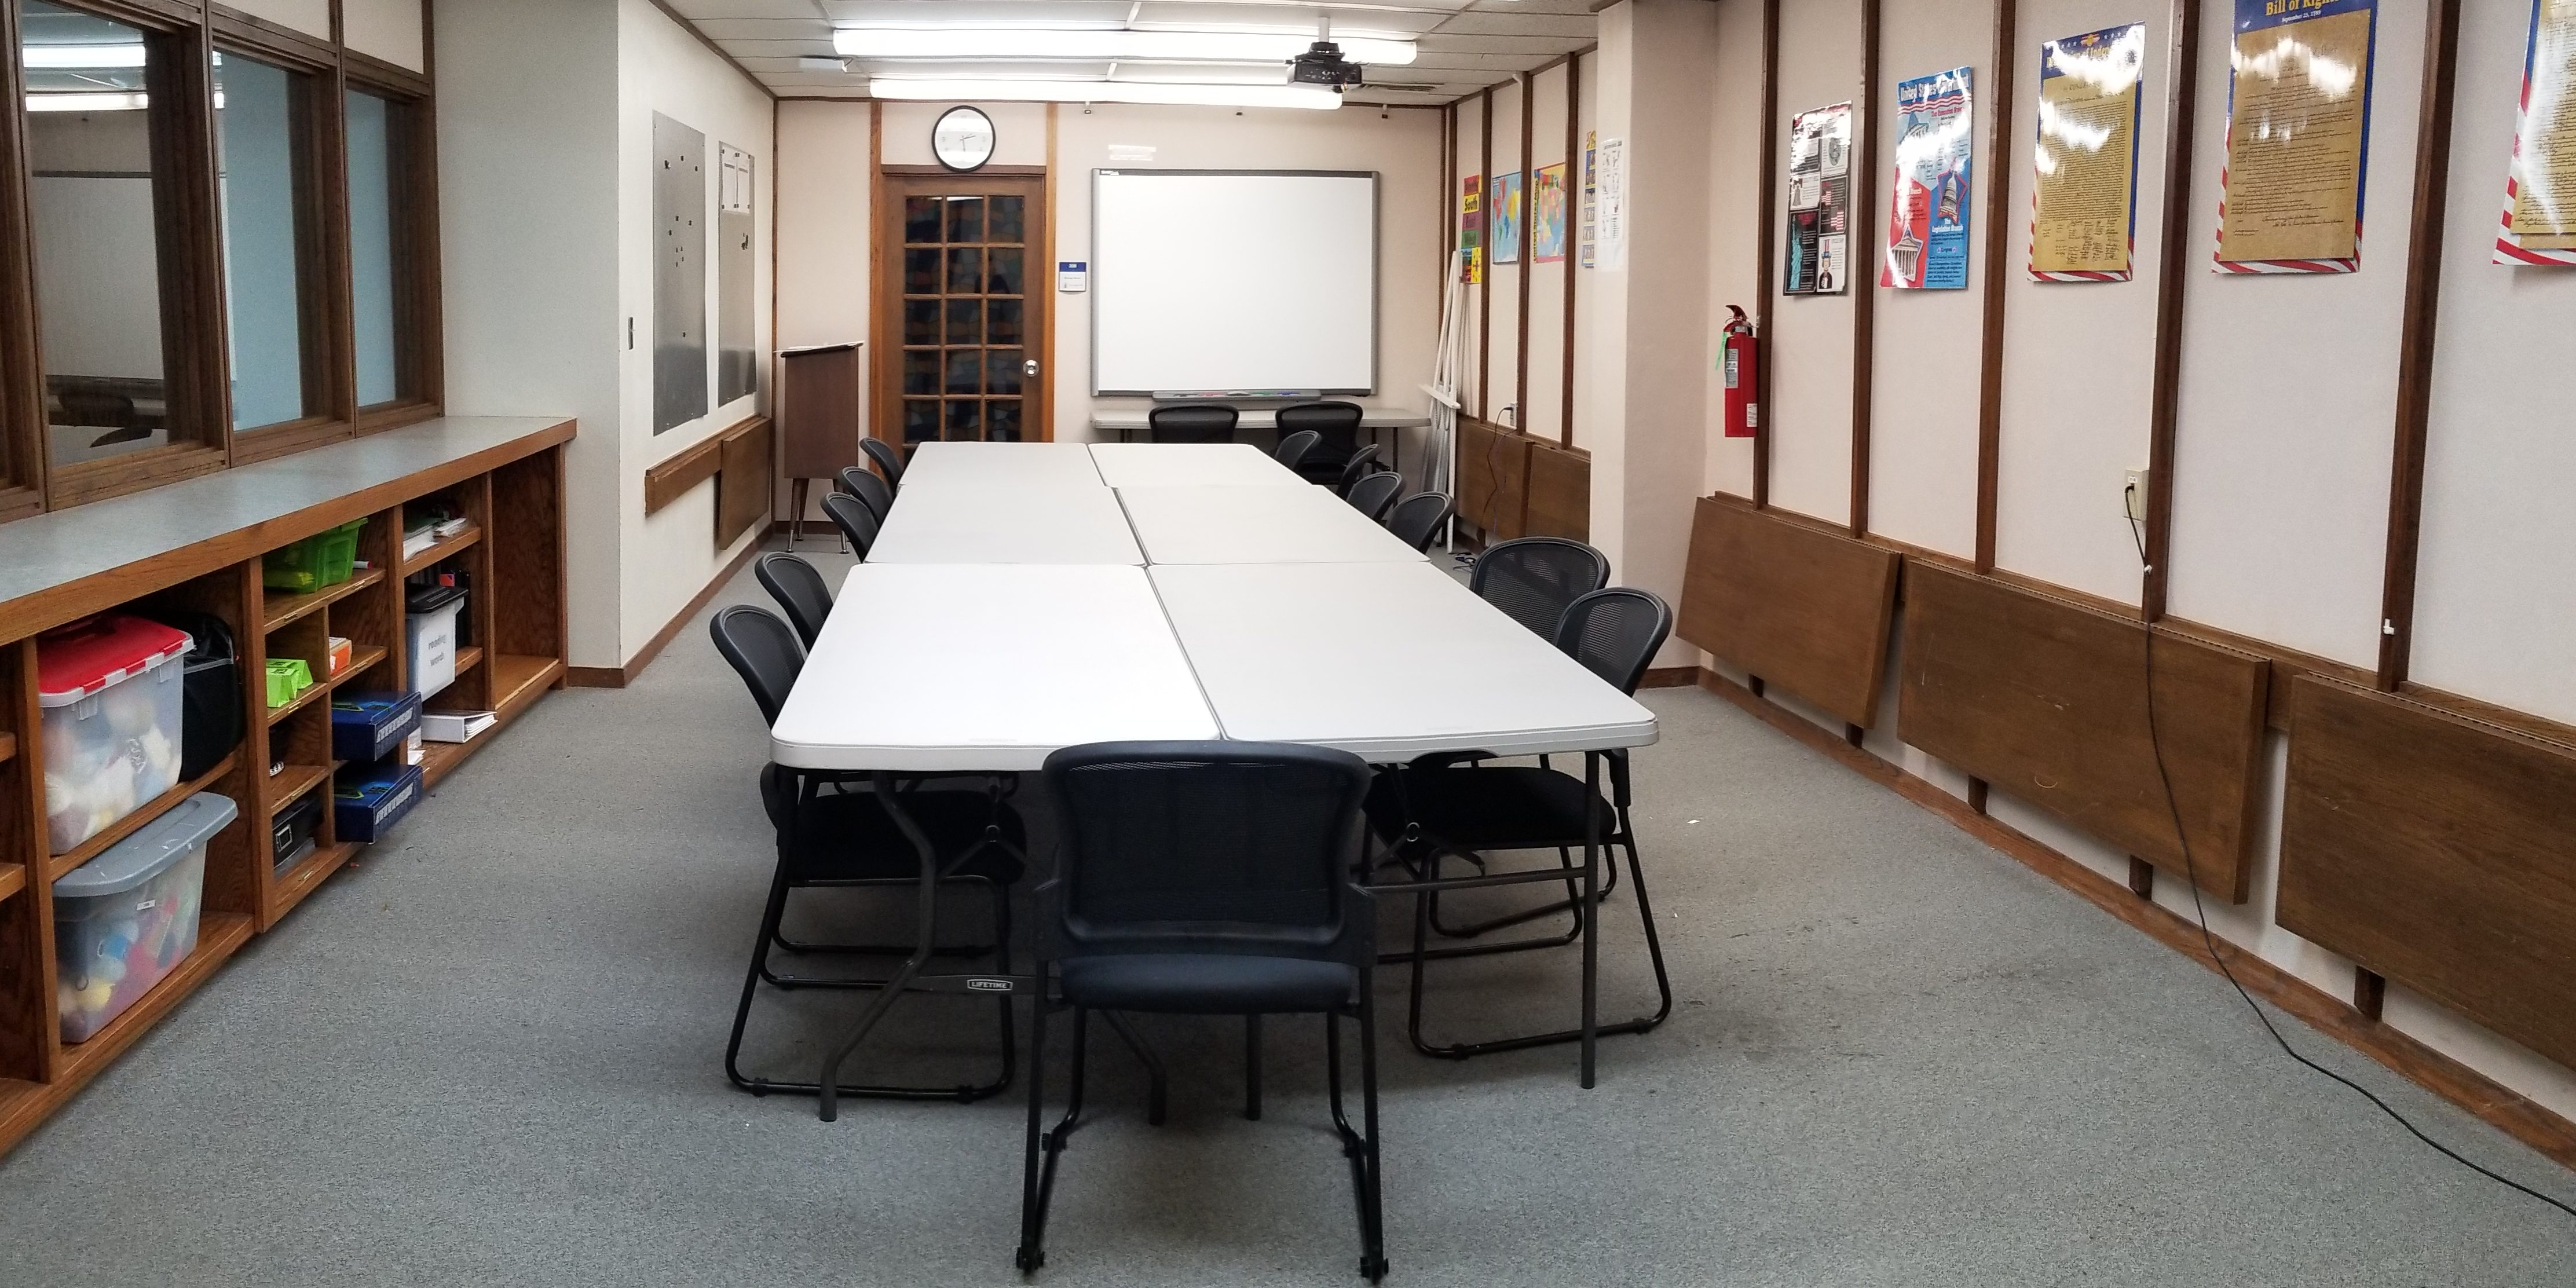 room with tables and chairs